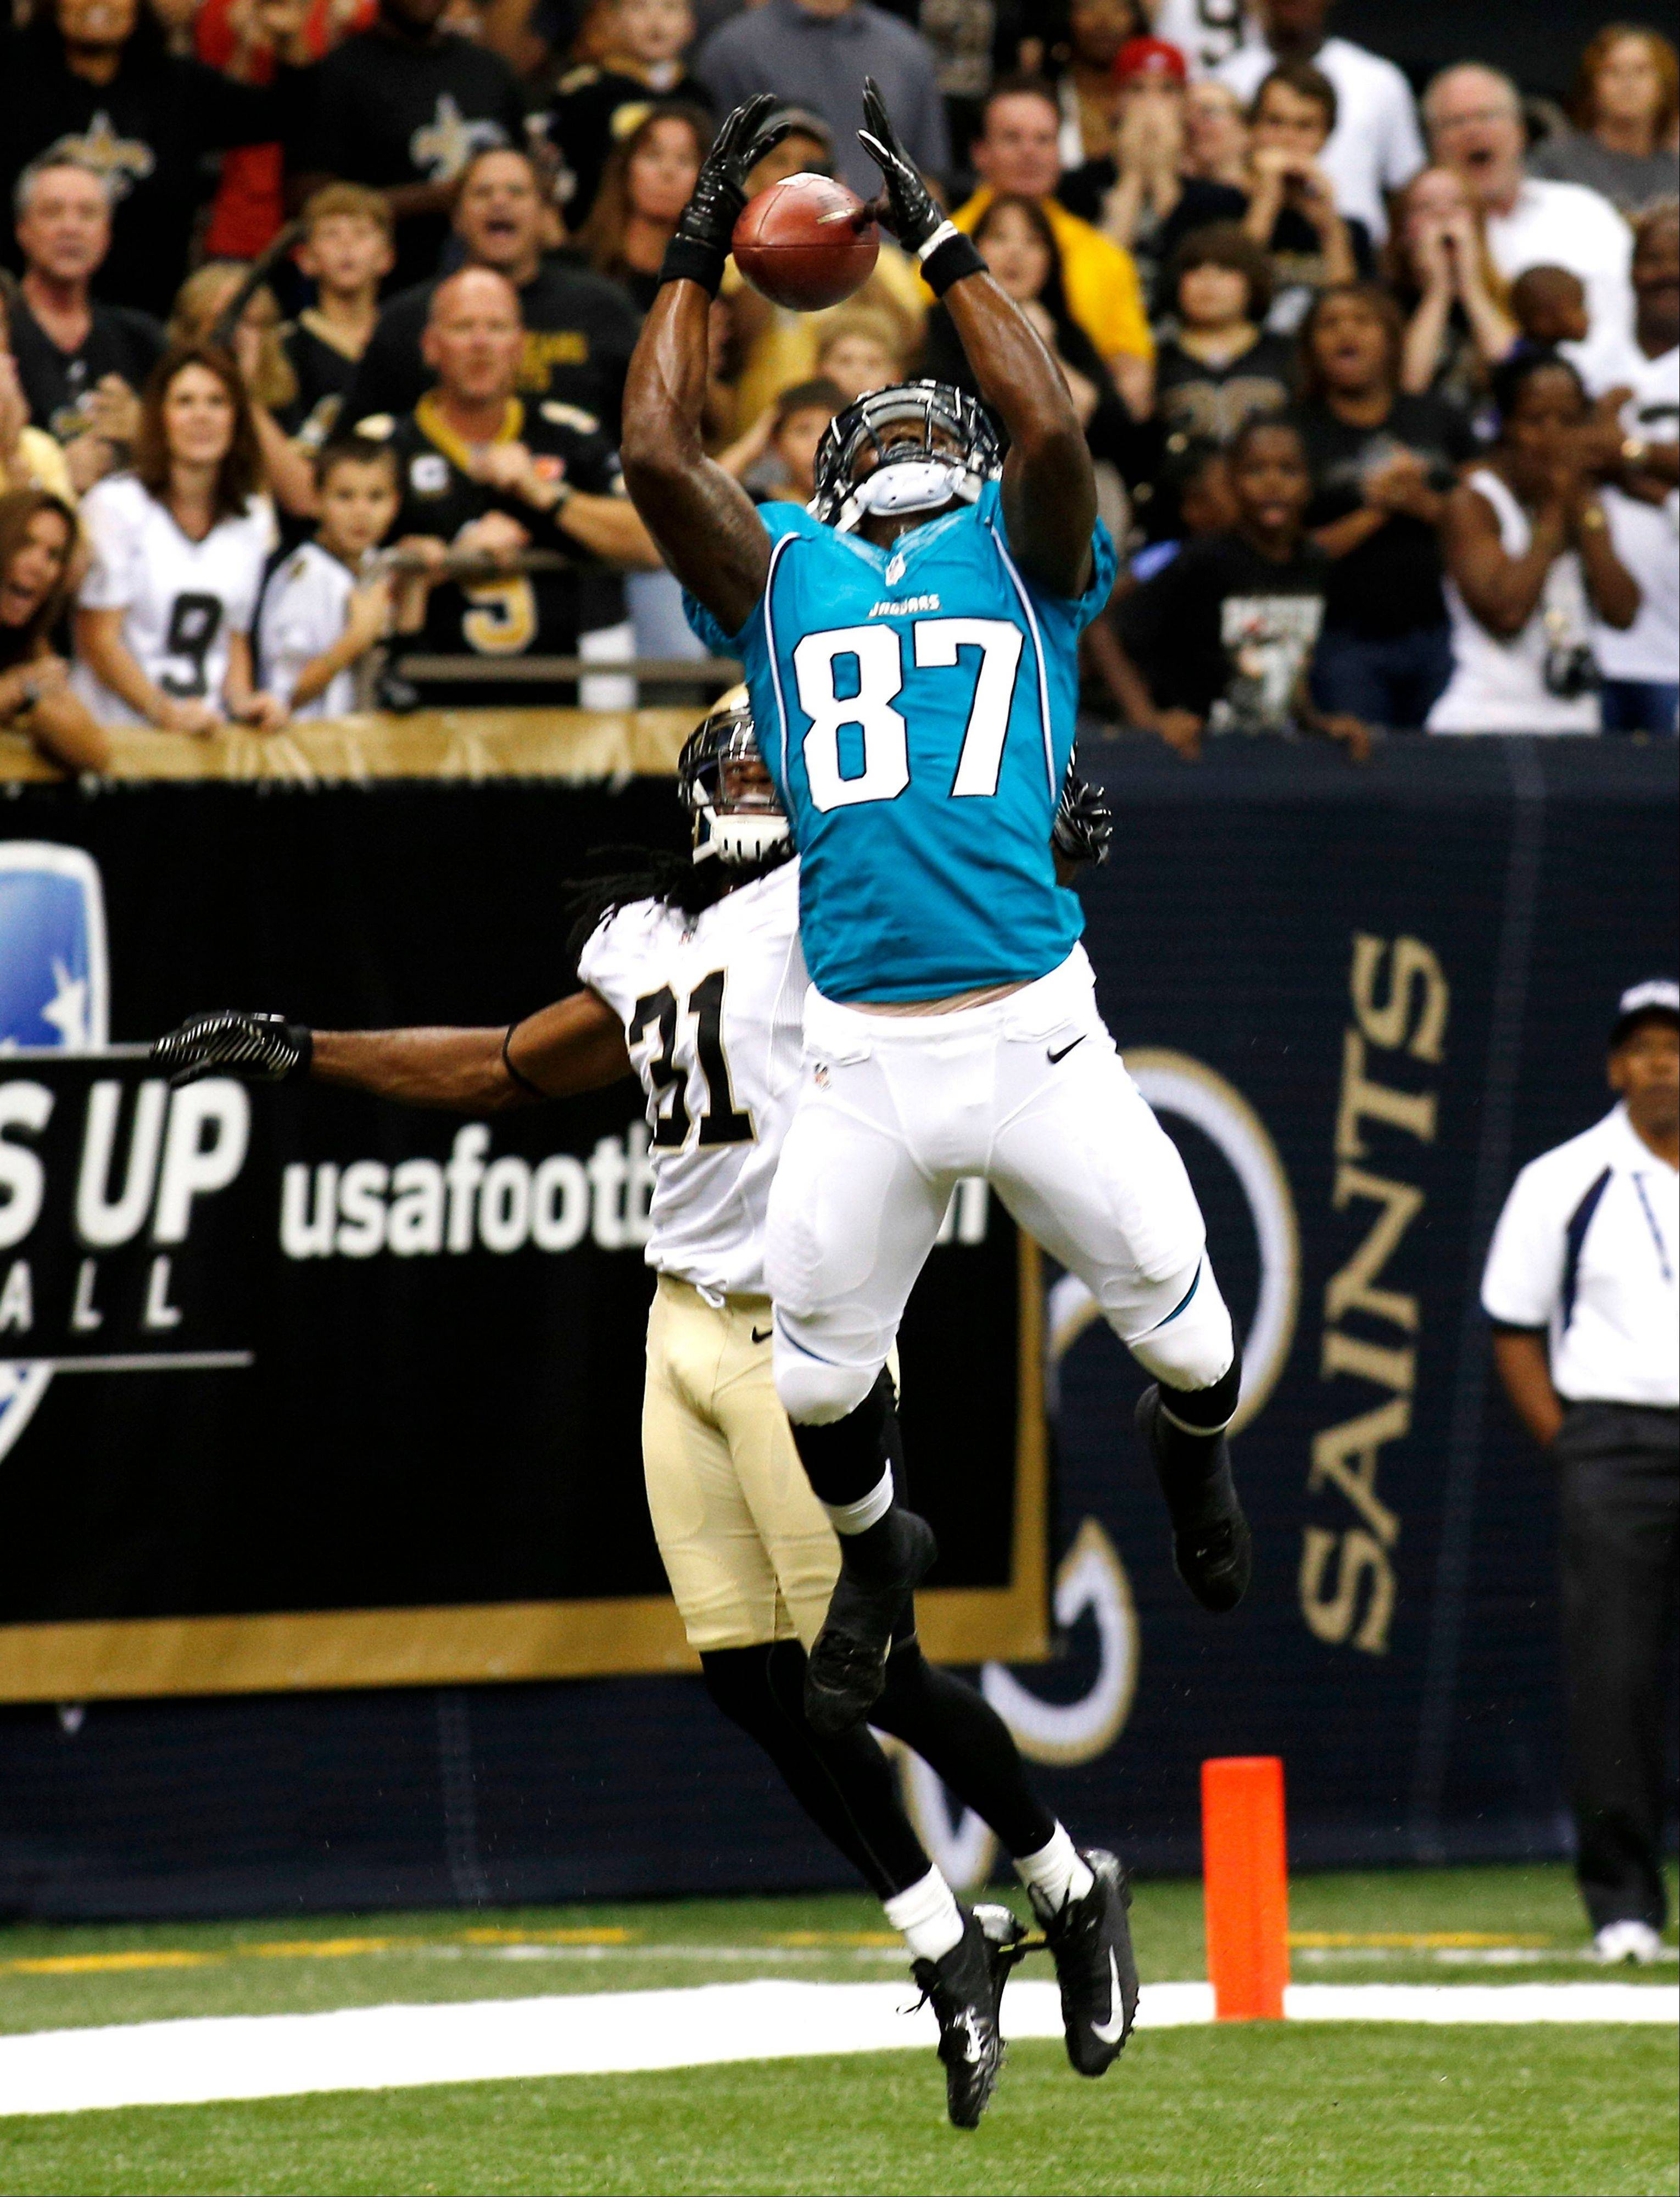 Jaguars wide receiver Kevin Elliott pulls in the game-winning touchdown pass over Saints defensive back Cord Parks on Friday night in preseason action in New Orleans.